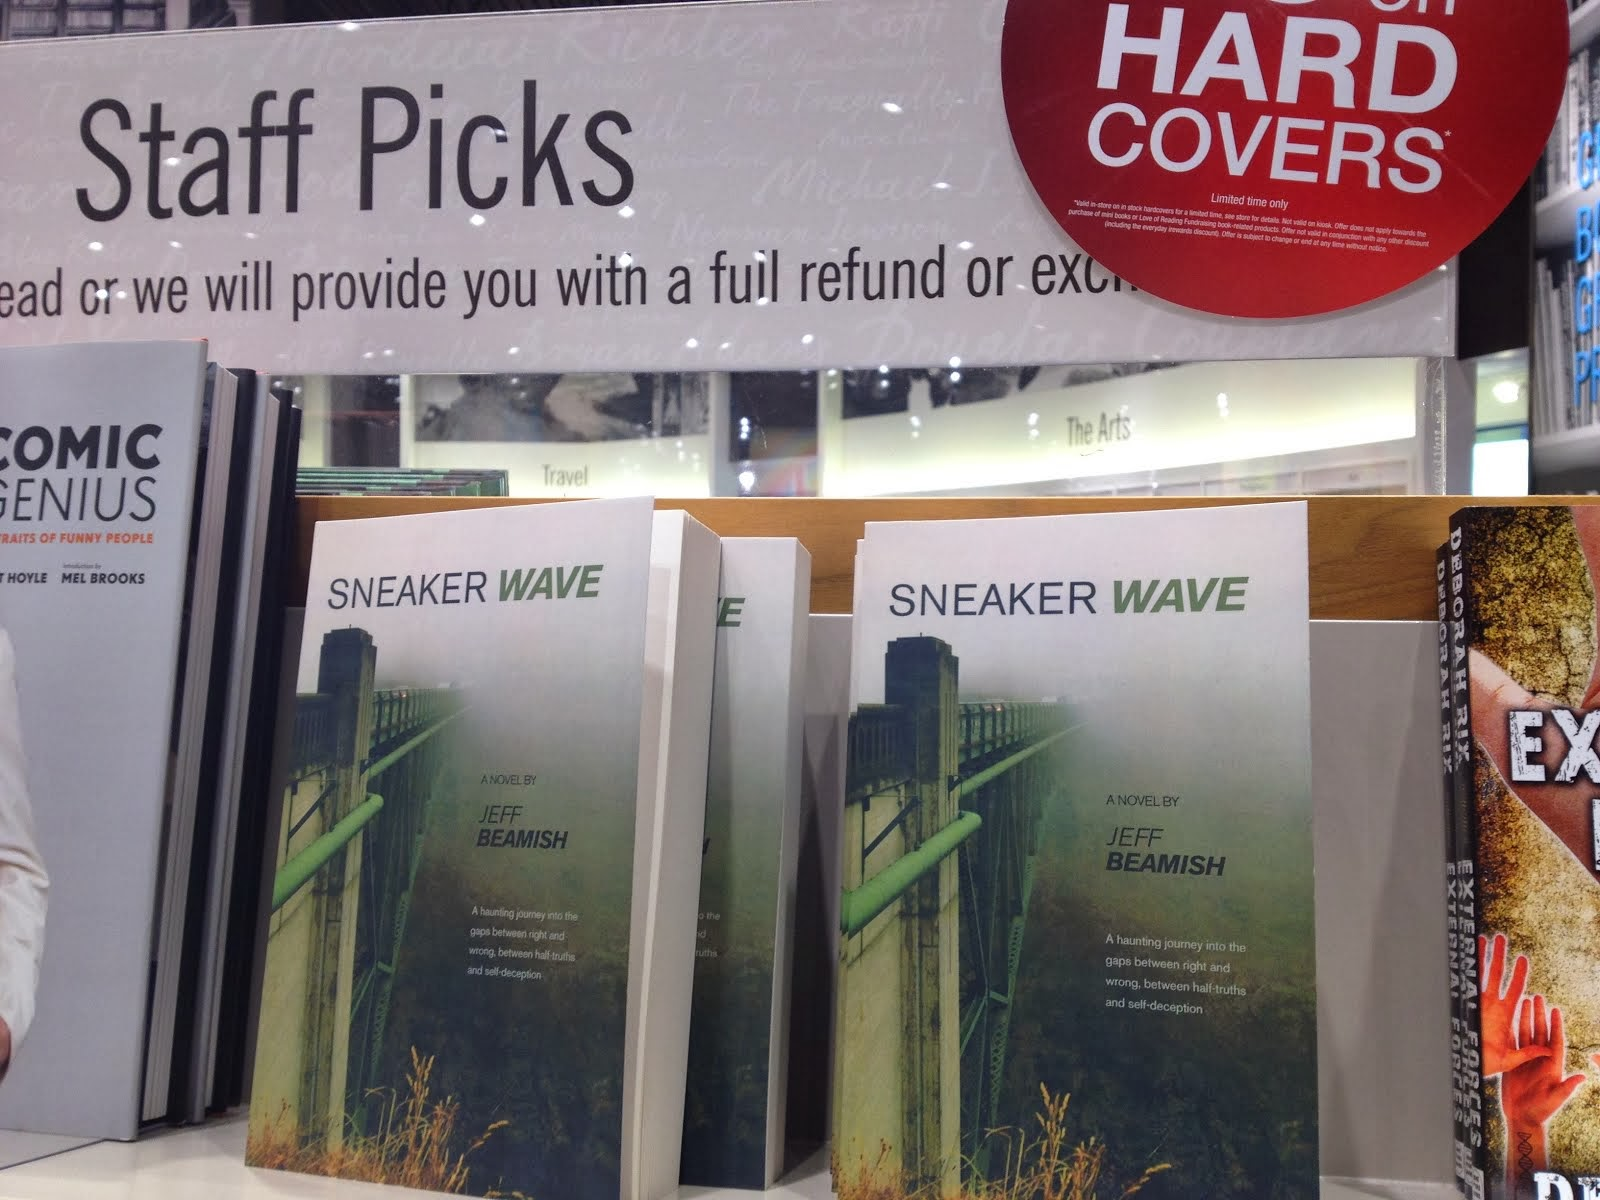 Sneaker Wave a Staff Pick at Chapters/Indigo